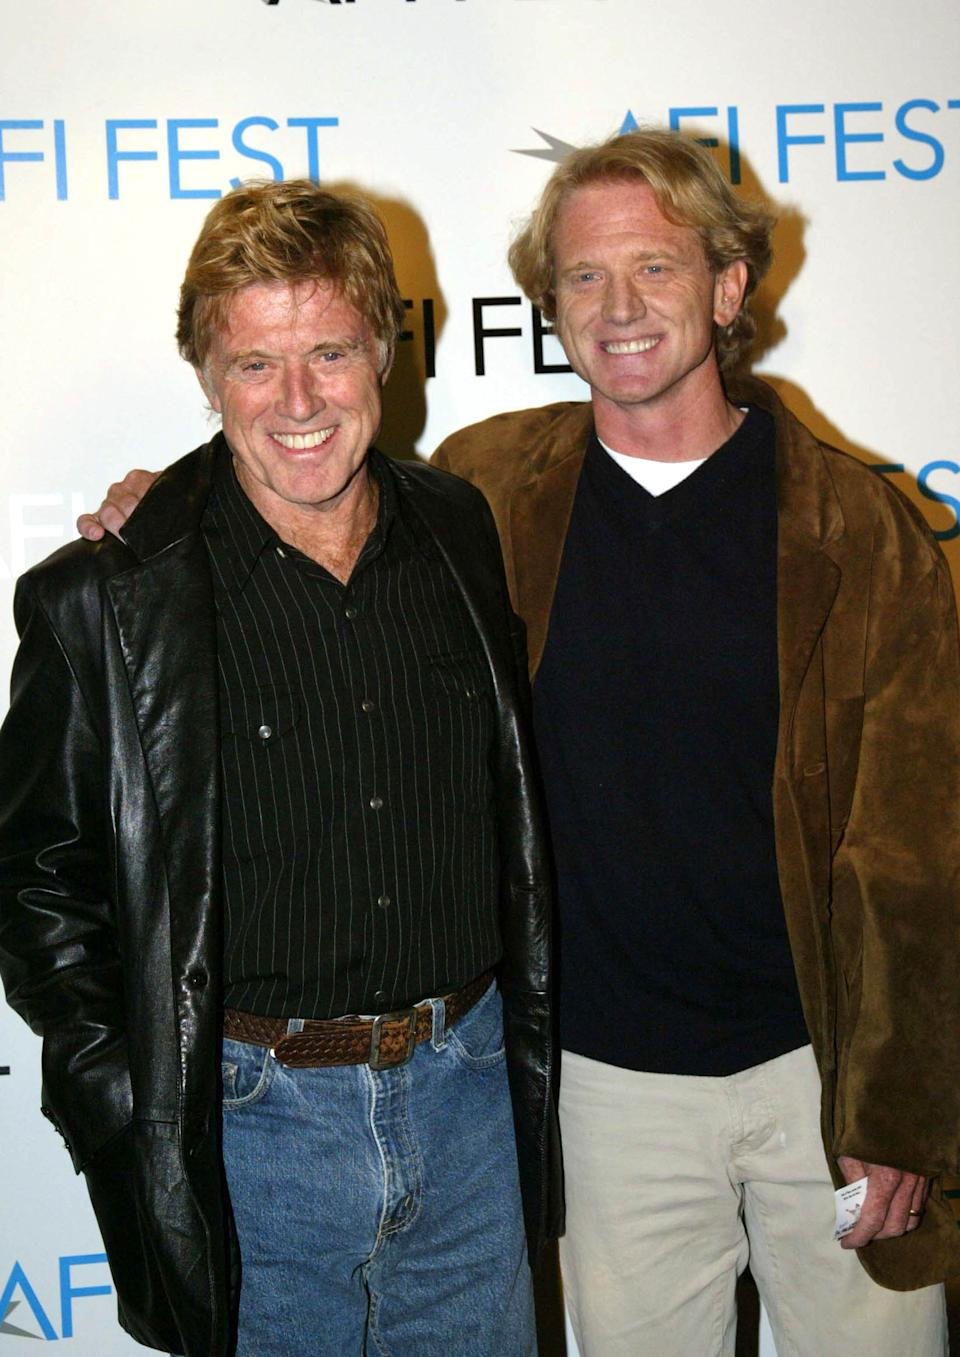 Robert Redford and James Redford